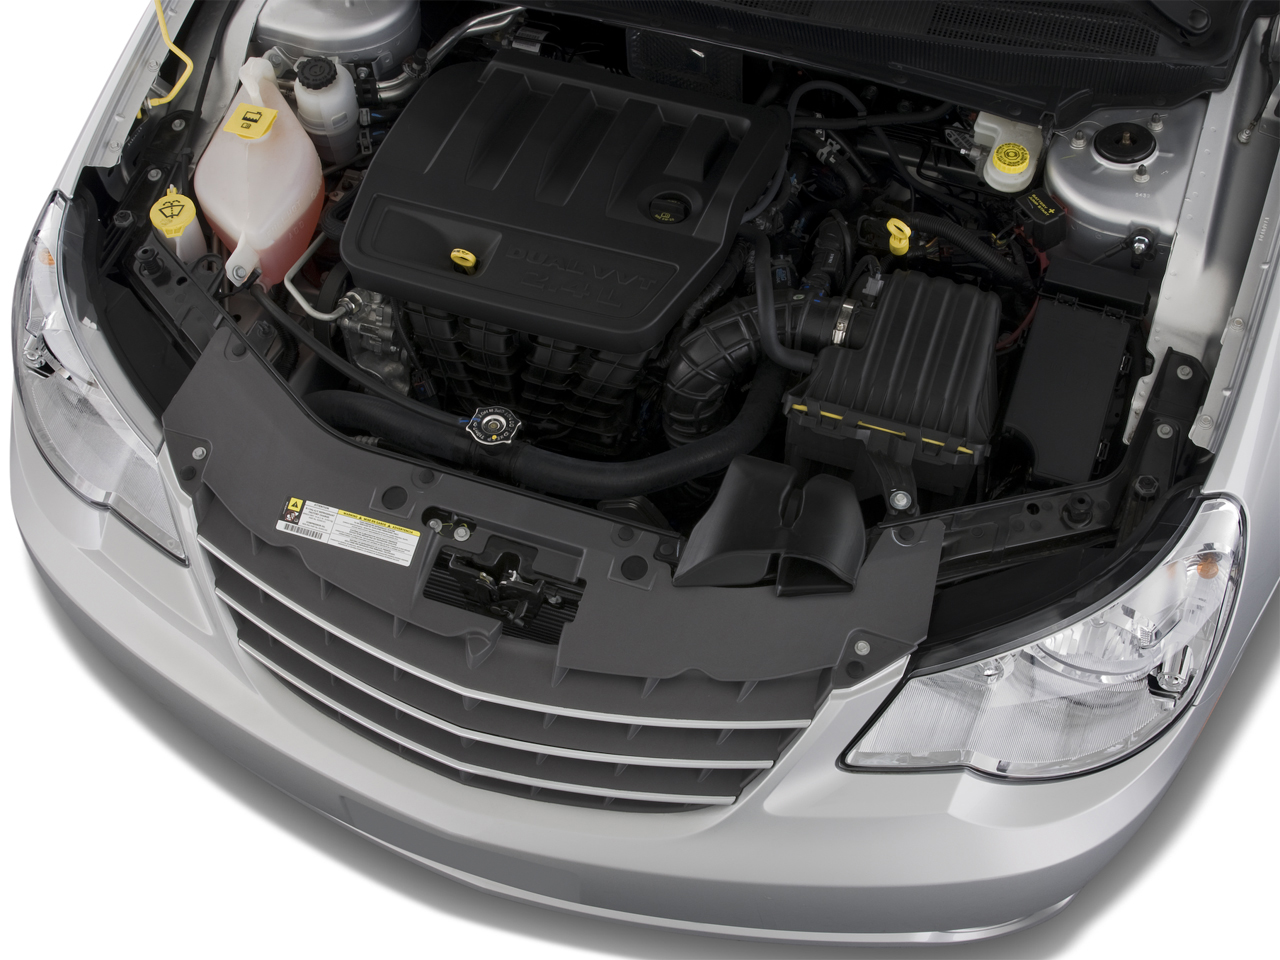 2013 Chrysler 200 Fuse Box Location